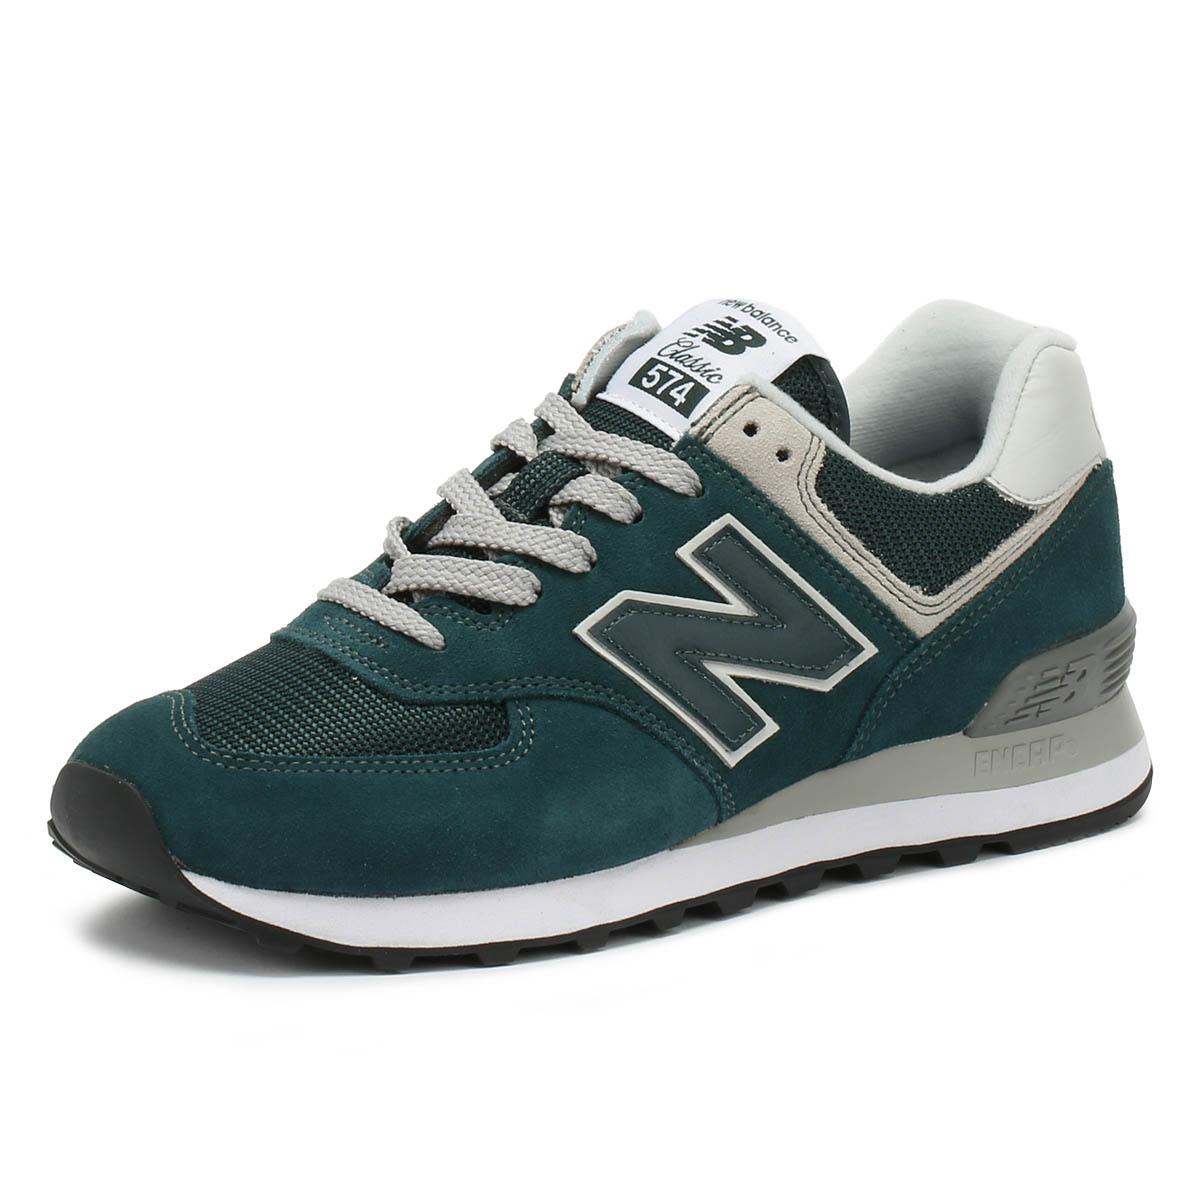 New Balance Mens Trainers 574 Green Classic Lace Up Sport Running ... 65ea694de45